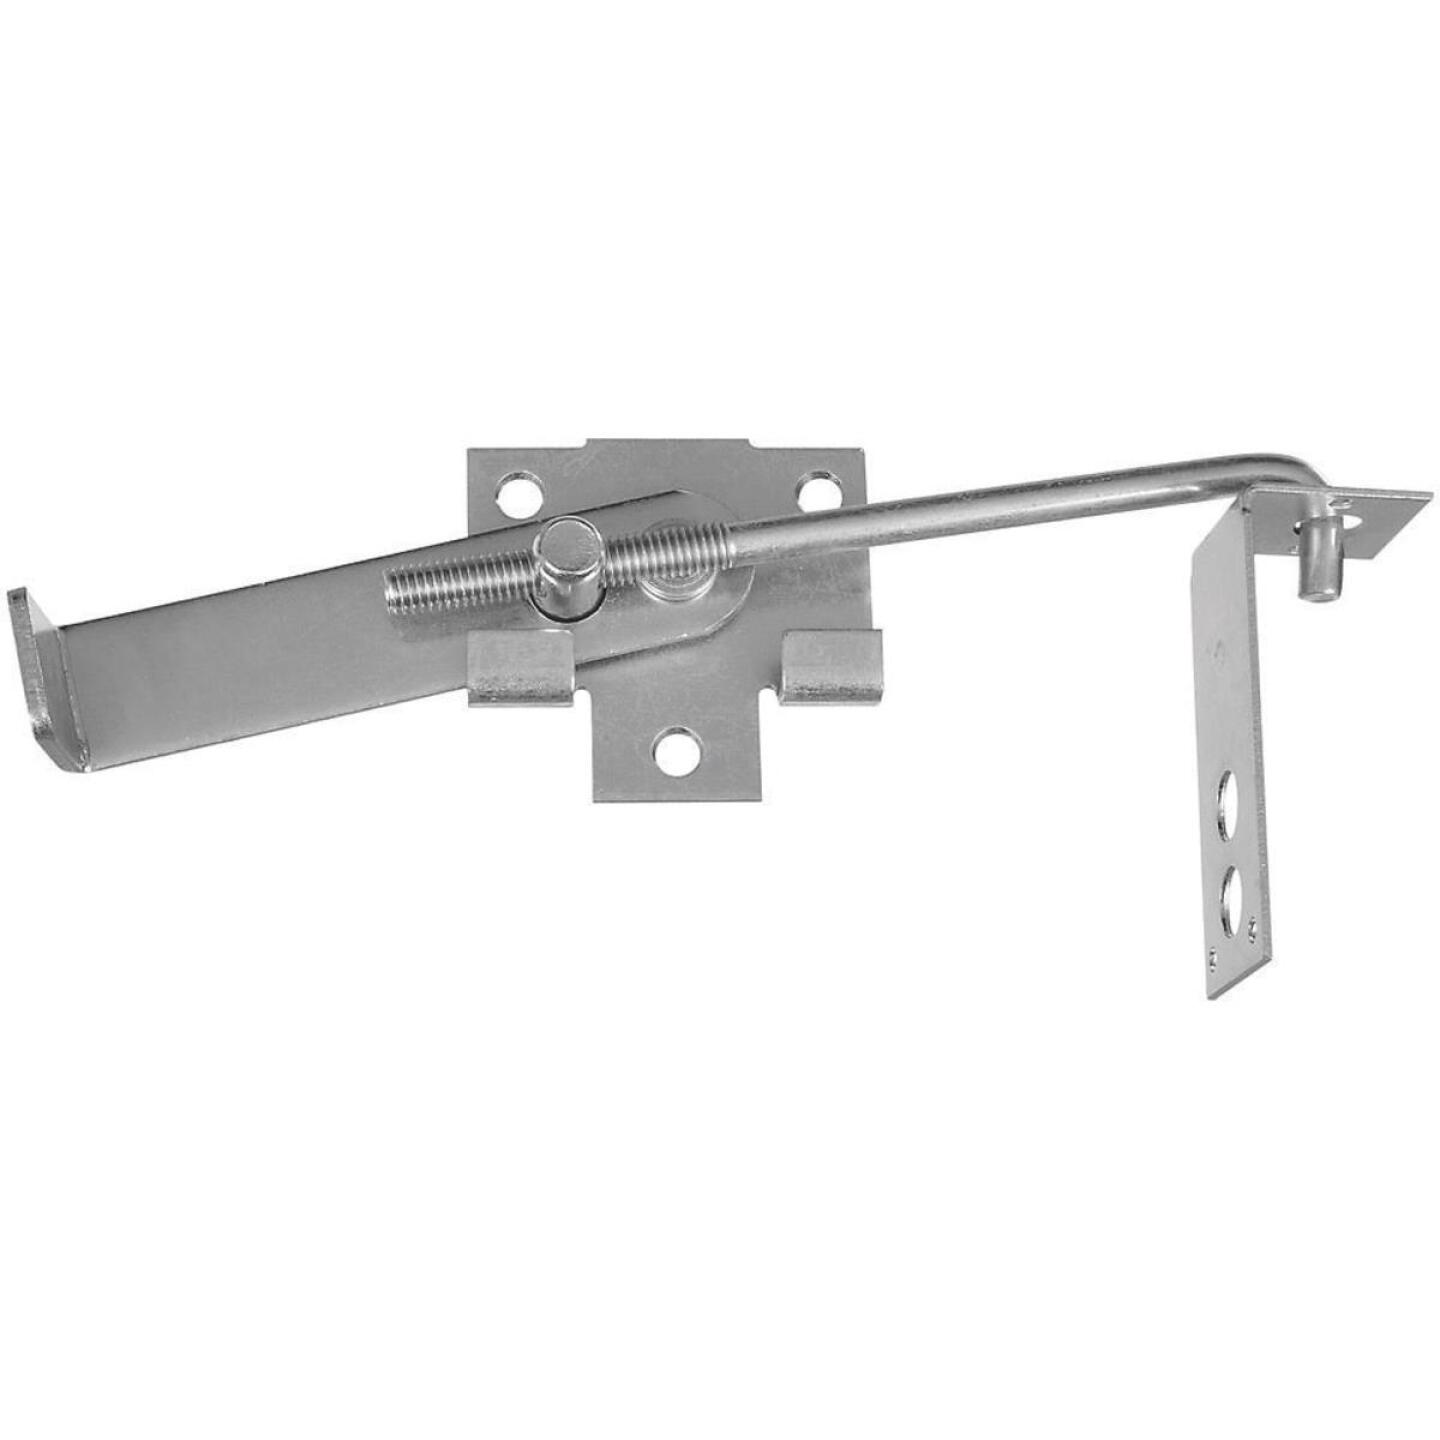 National Zinc-Plated 7 In. Steel Barn Door Latch Image 1